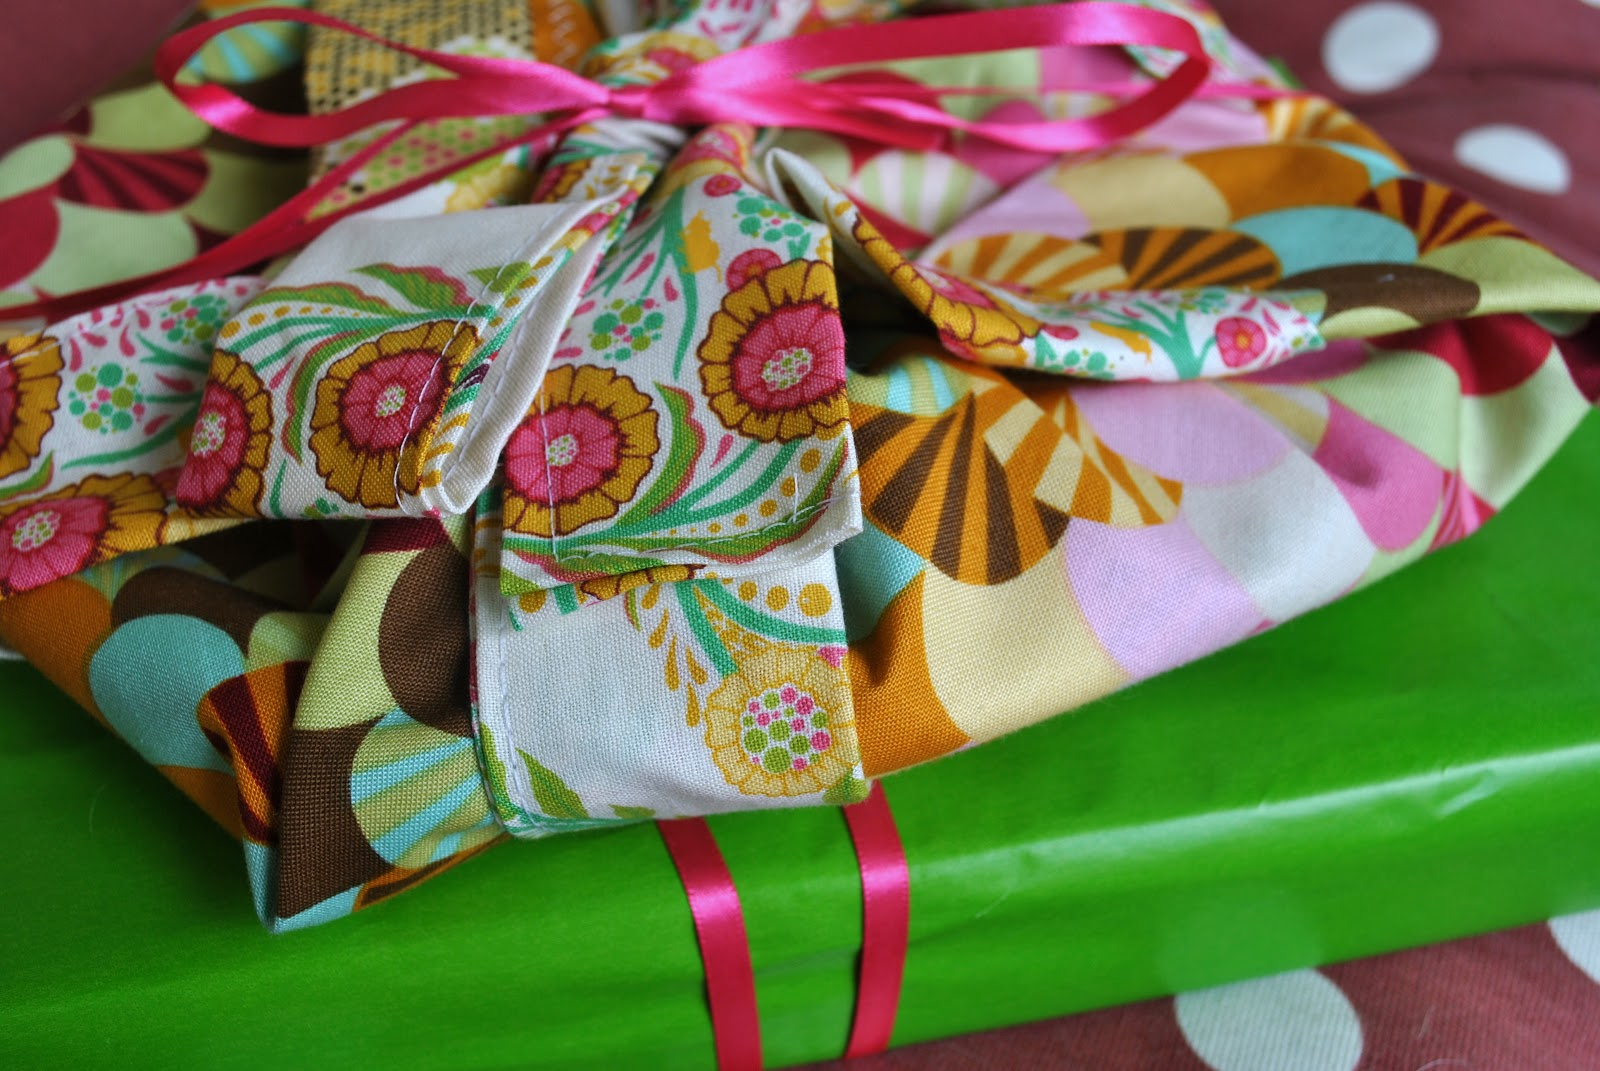 Wedding Shower Gift To Daughter : Bridal Shower A Mothers Wedding Gift To Her Daugh